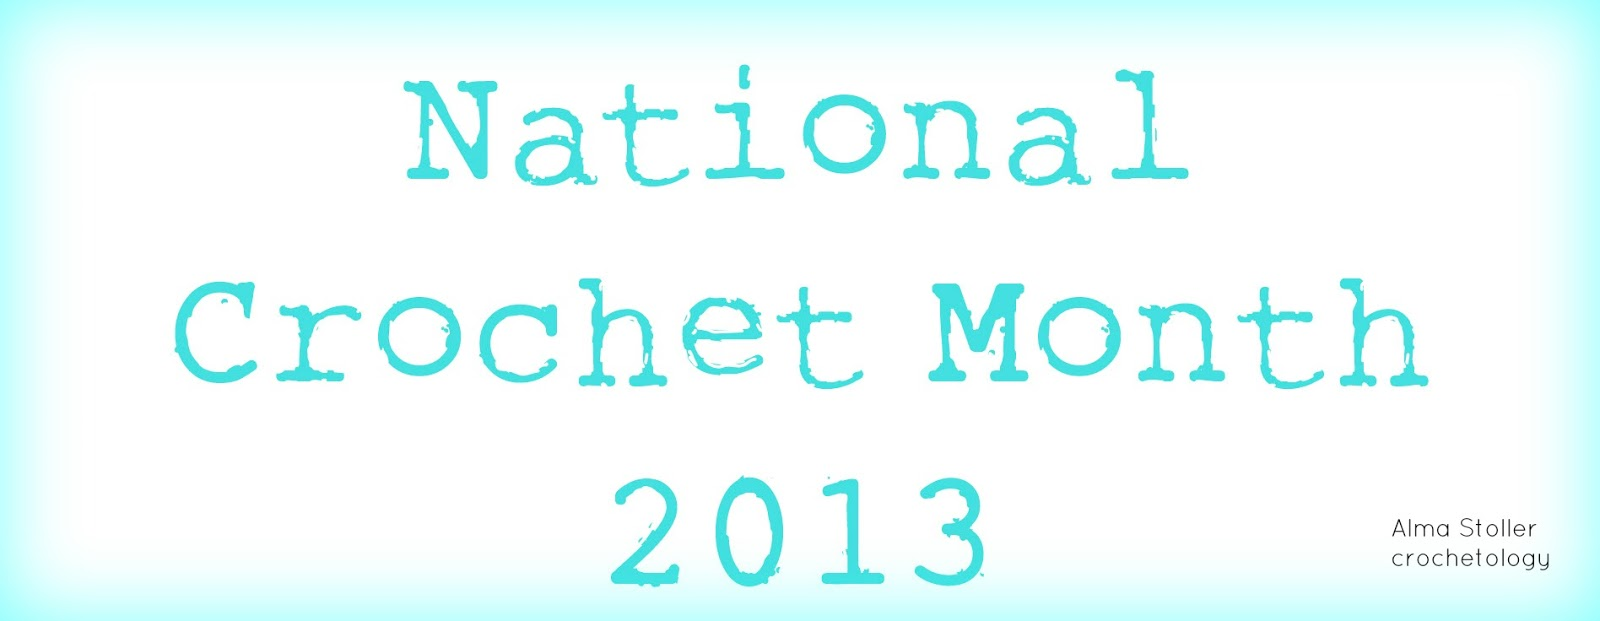 Crochetology: Crochetology Giveaway and National Crochet Month